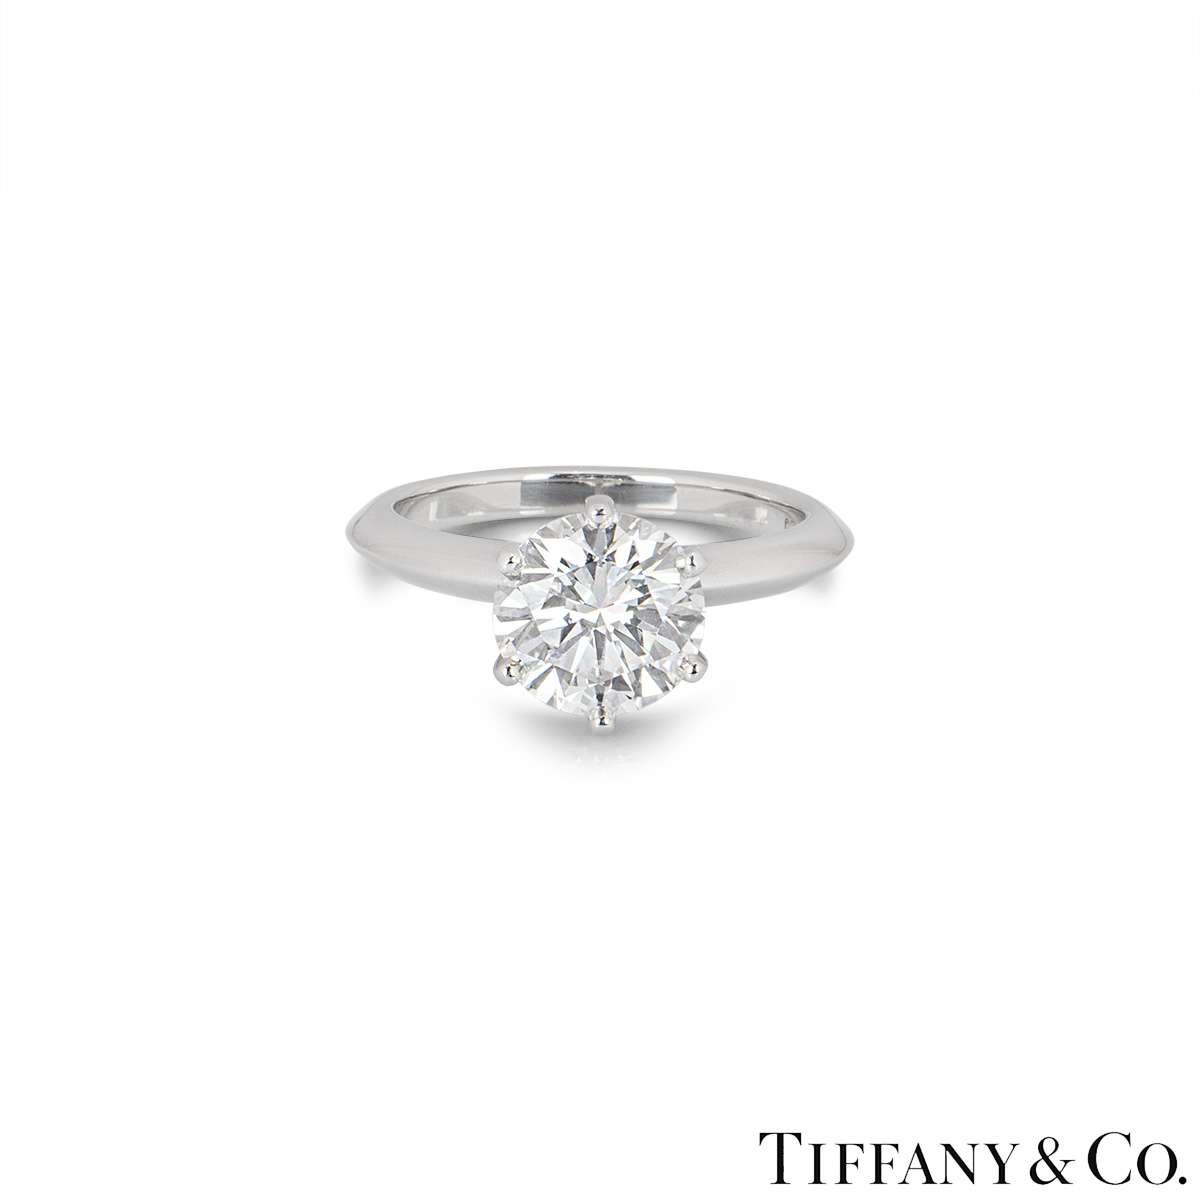 Tiffany & Co. Platinum Diamond Setting Ring 2.12ct G/VS1 XXX